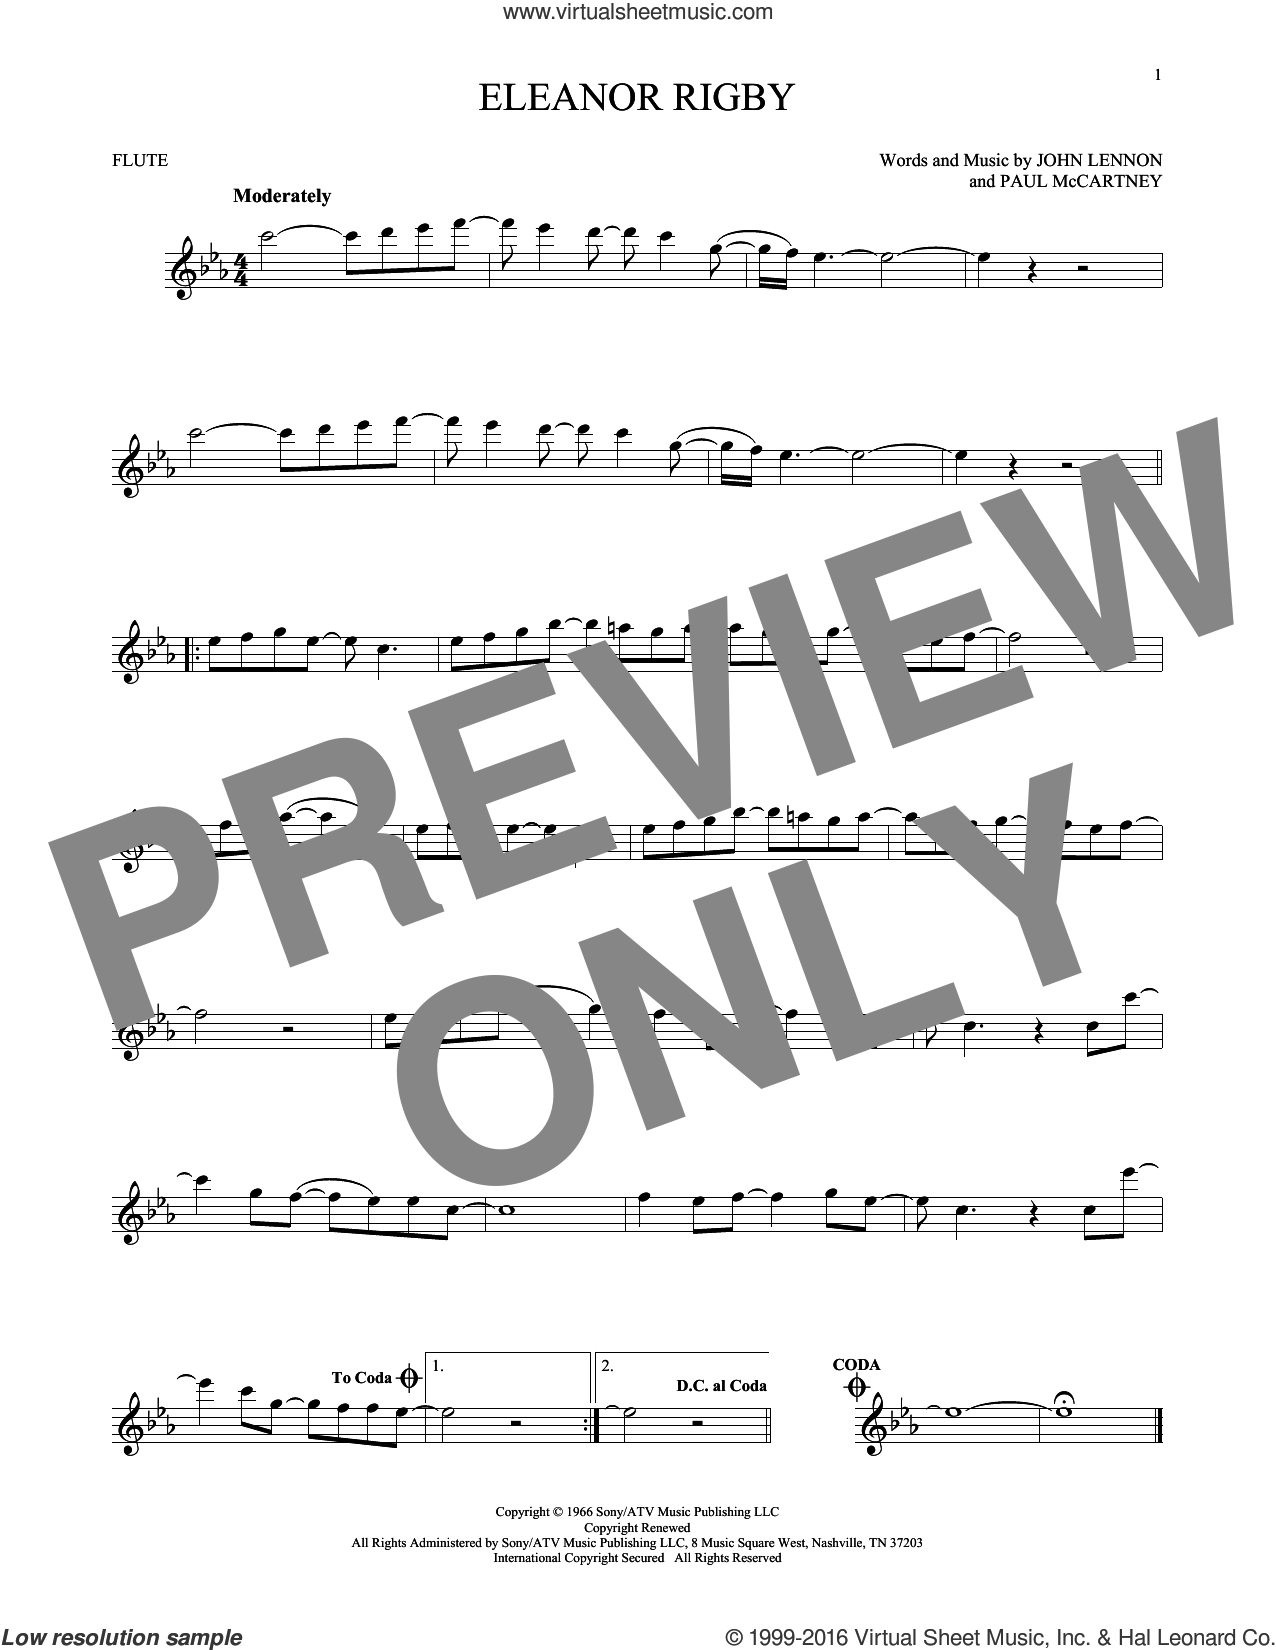 Eleanor Rigby sheet music for flute solo by Paul McCartney